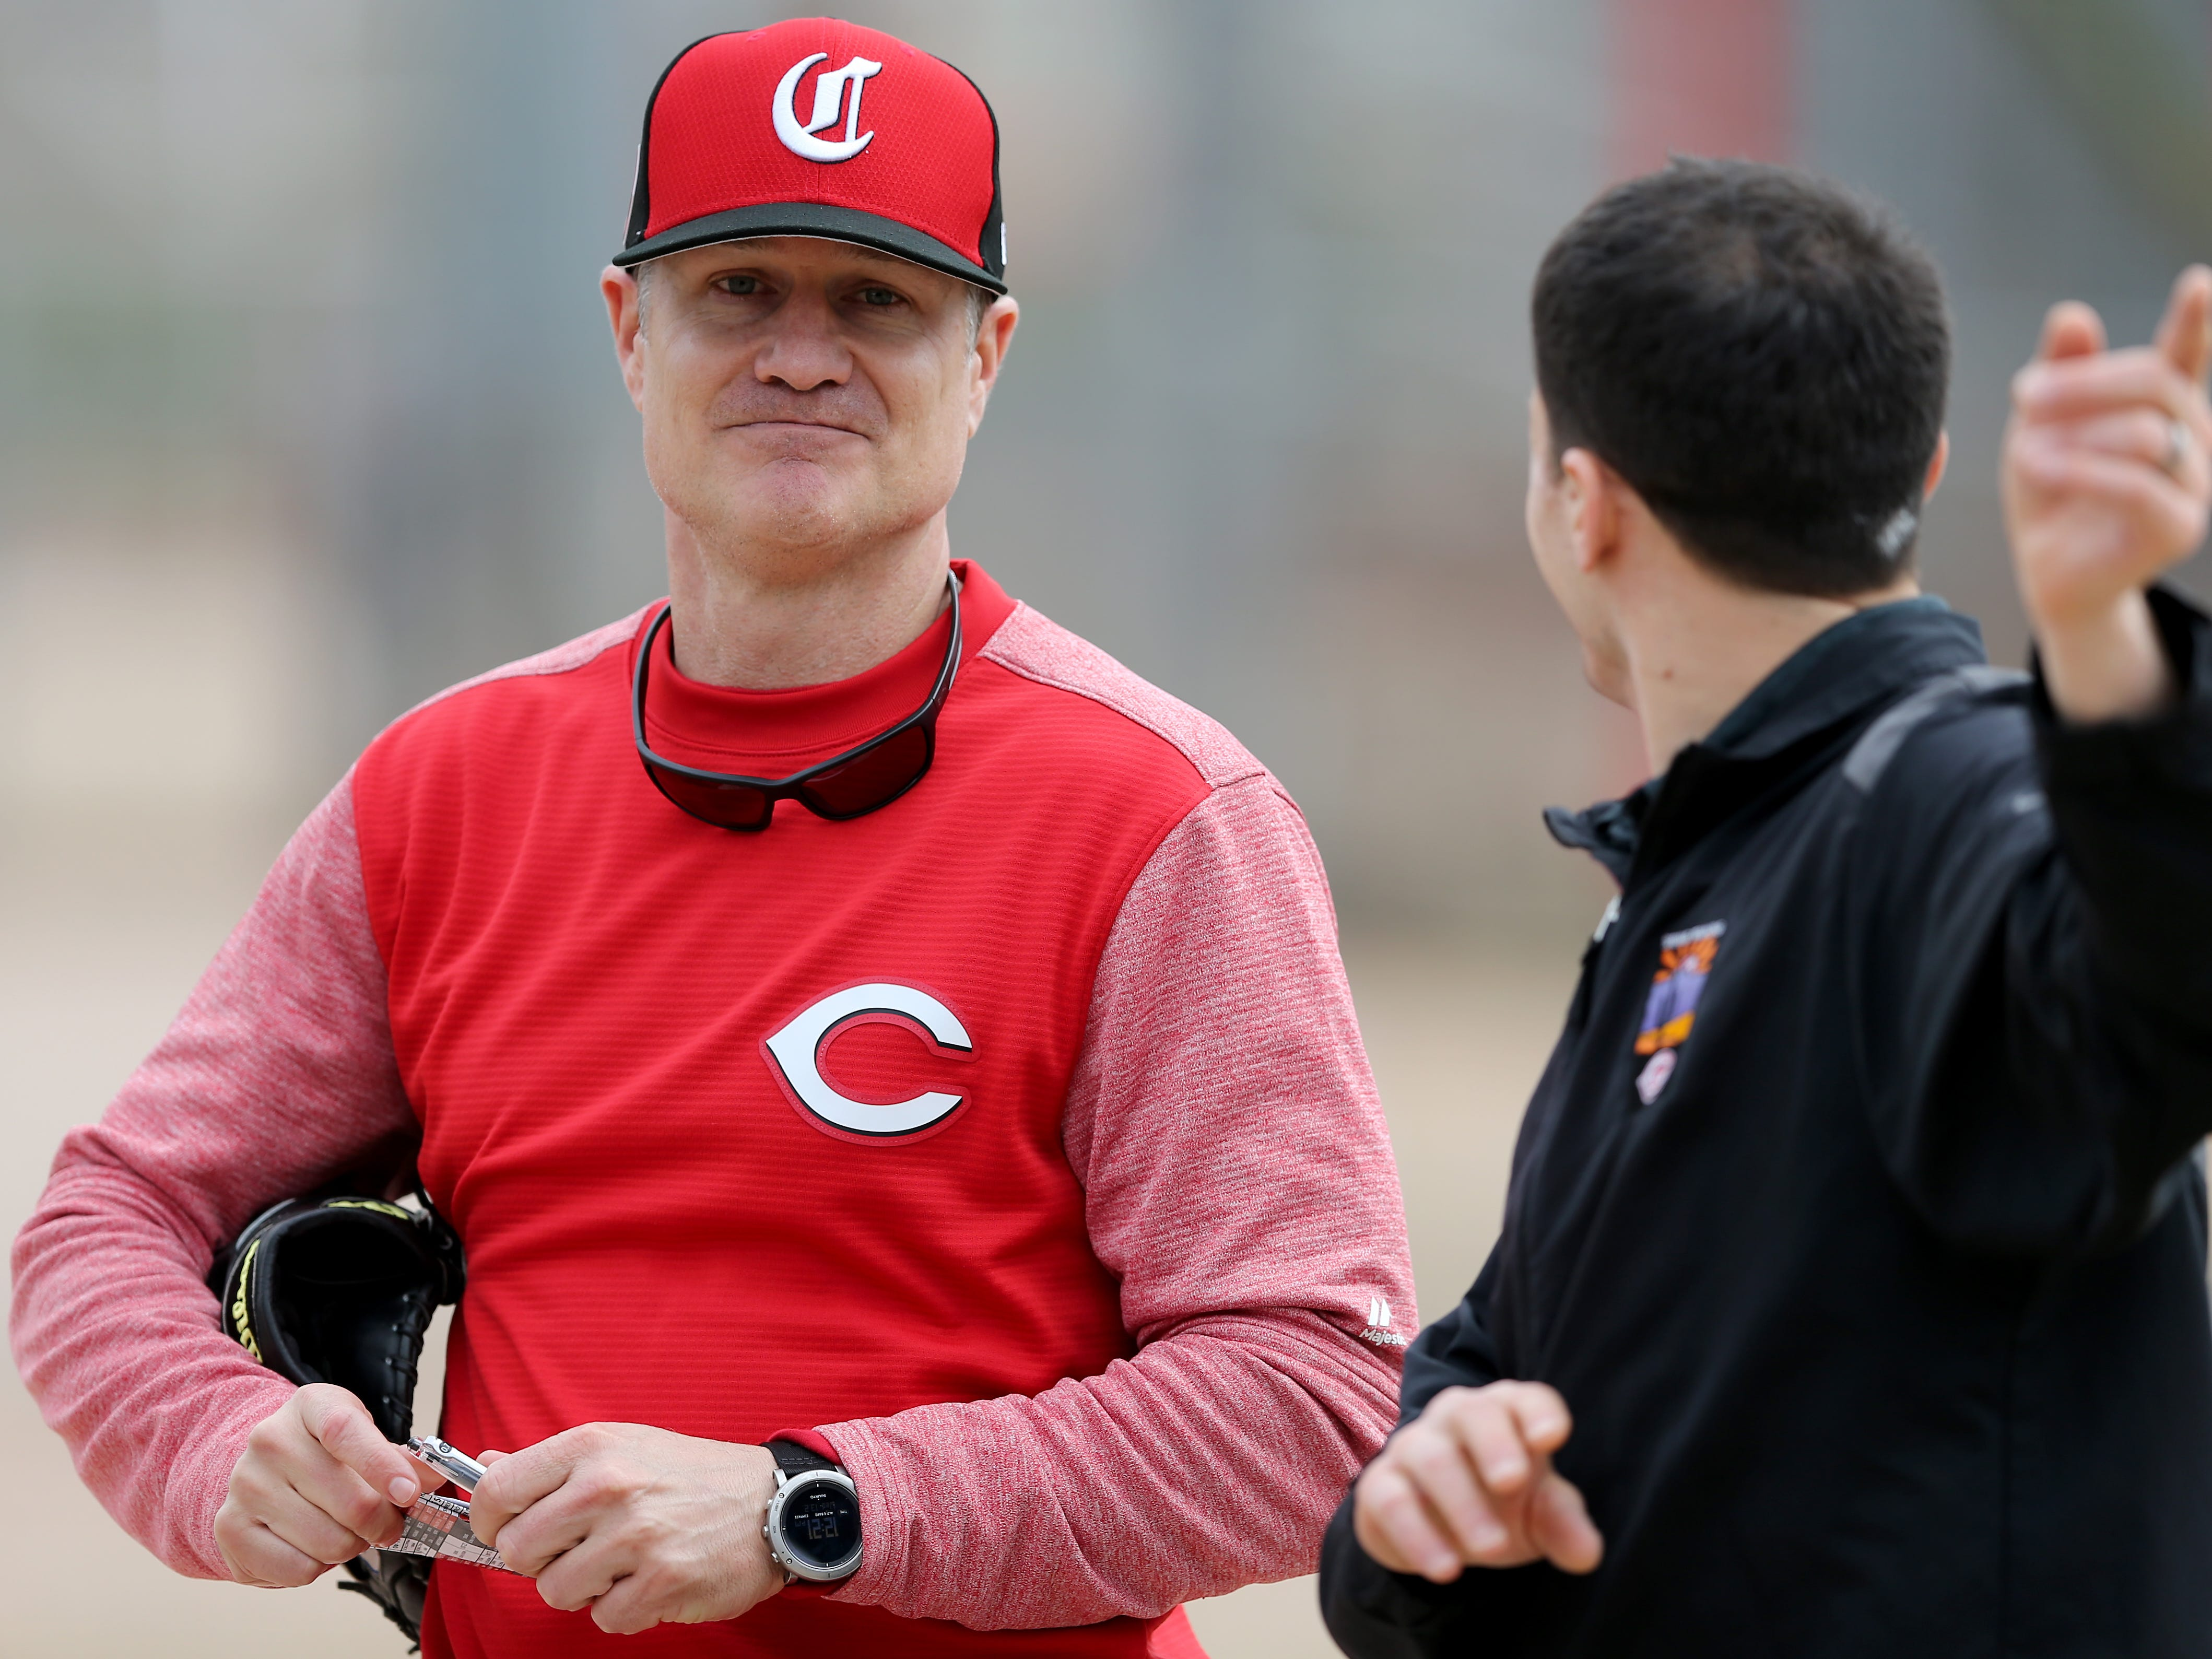 Cincinnati Reds manager David Bell (25) talks with assistant general manager Sam Grossman, right, Wednesday, Feb. 13, 2019, at the Cincinnati Reds spring training facility in Goodyear, Arizona.